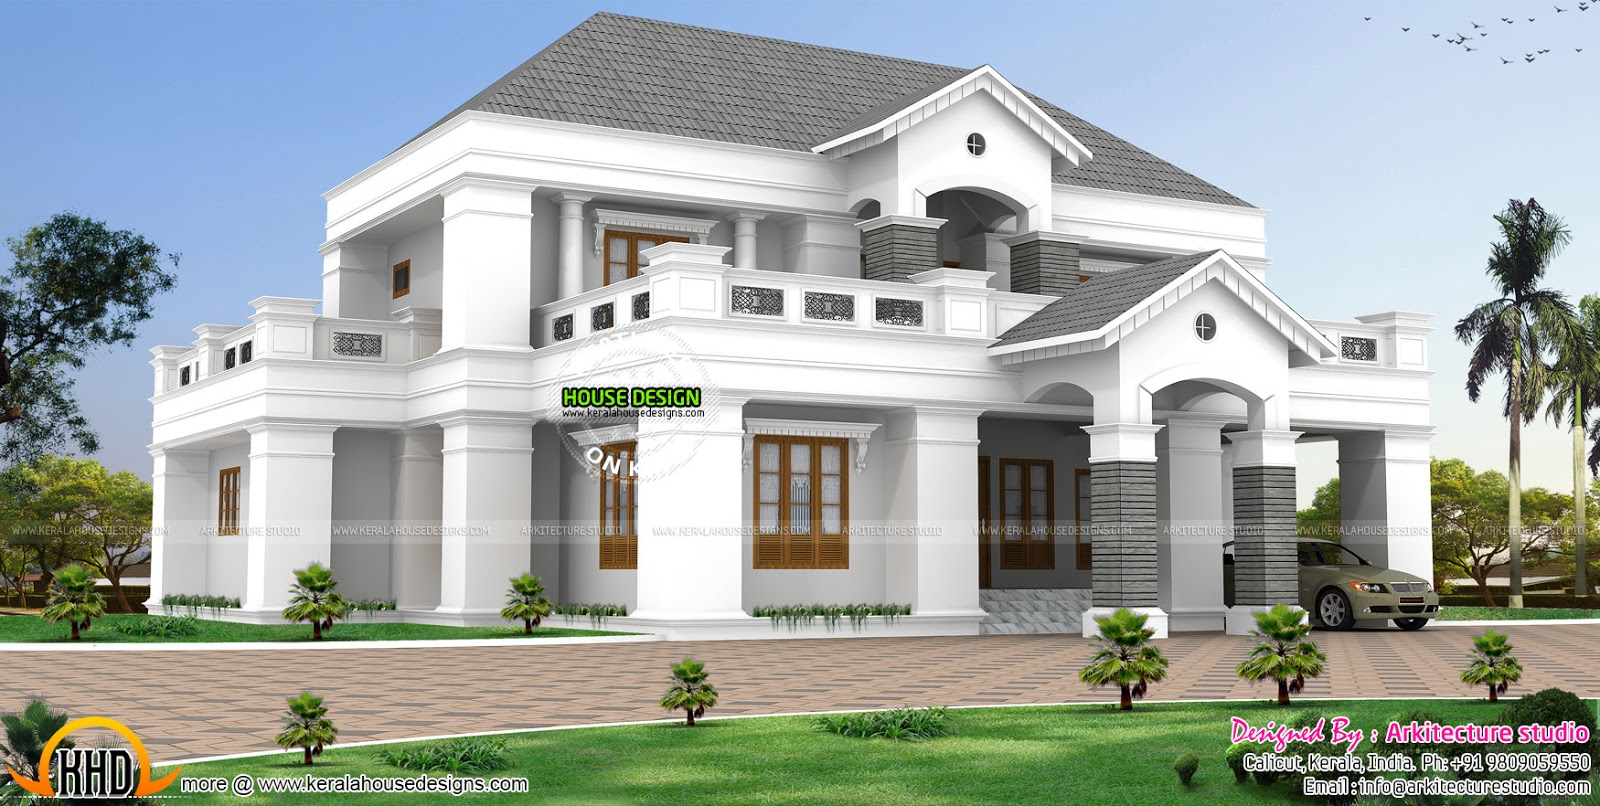 Luxurious pillar type home design kerala home design and for Home designs architecture